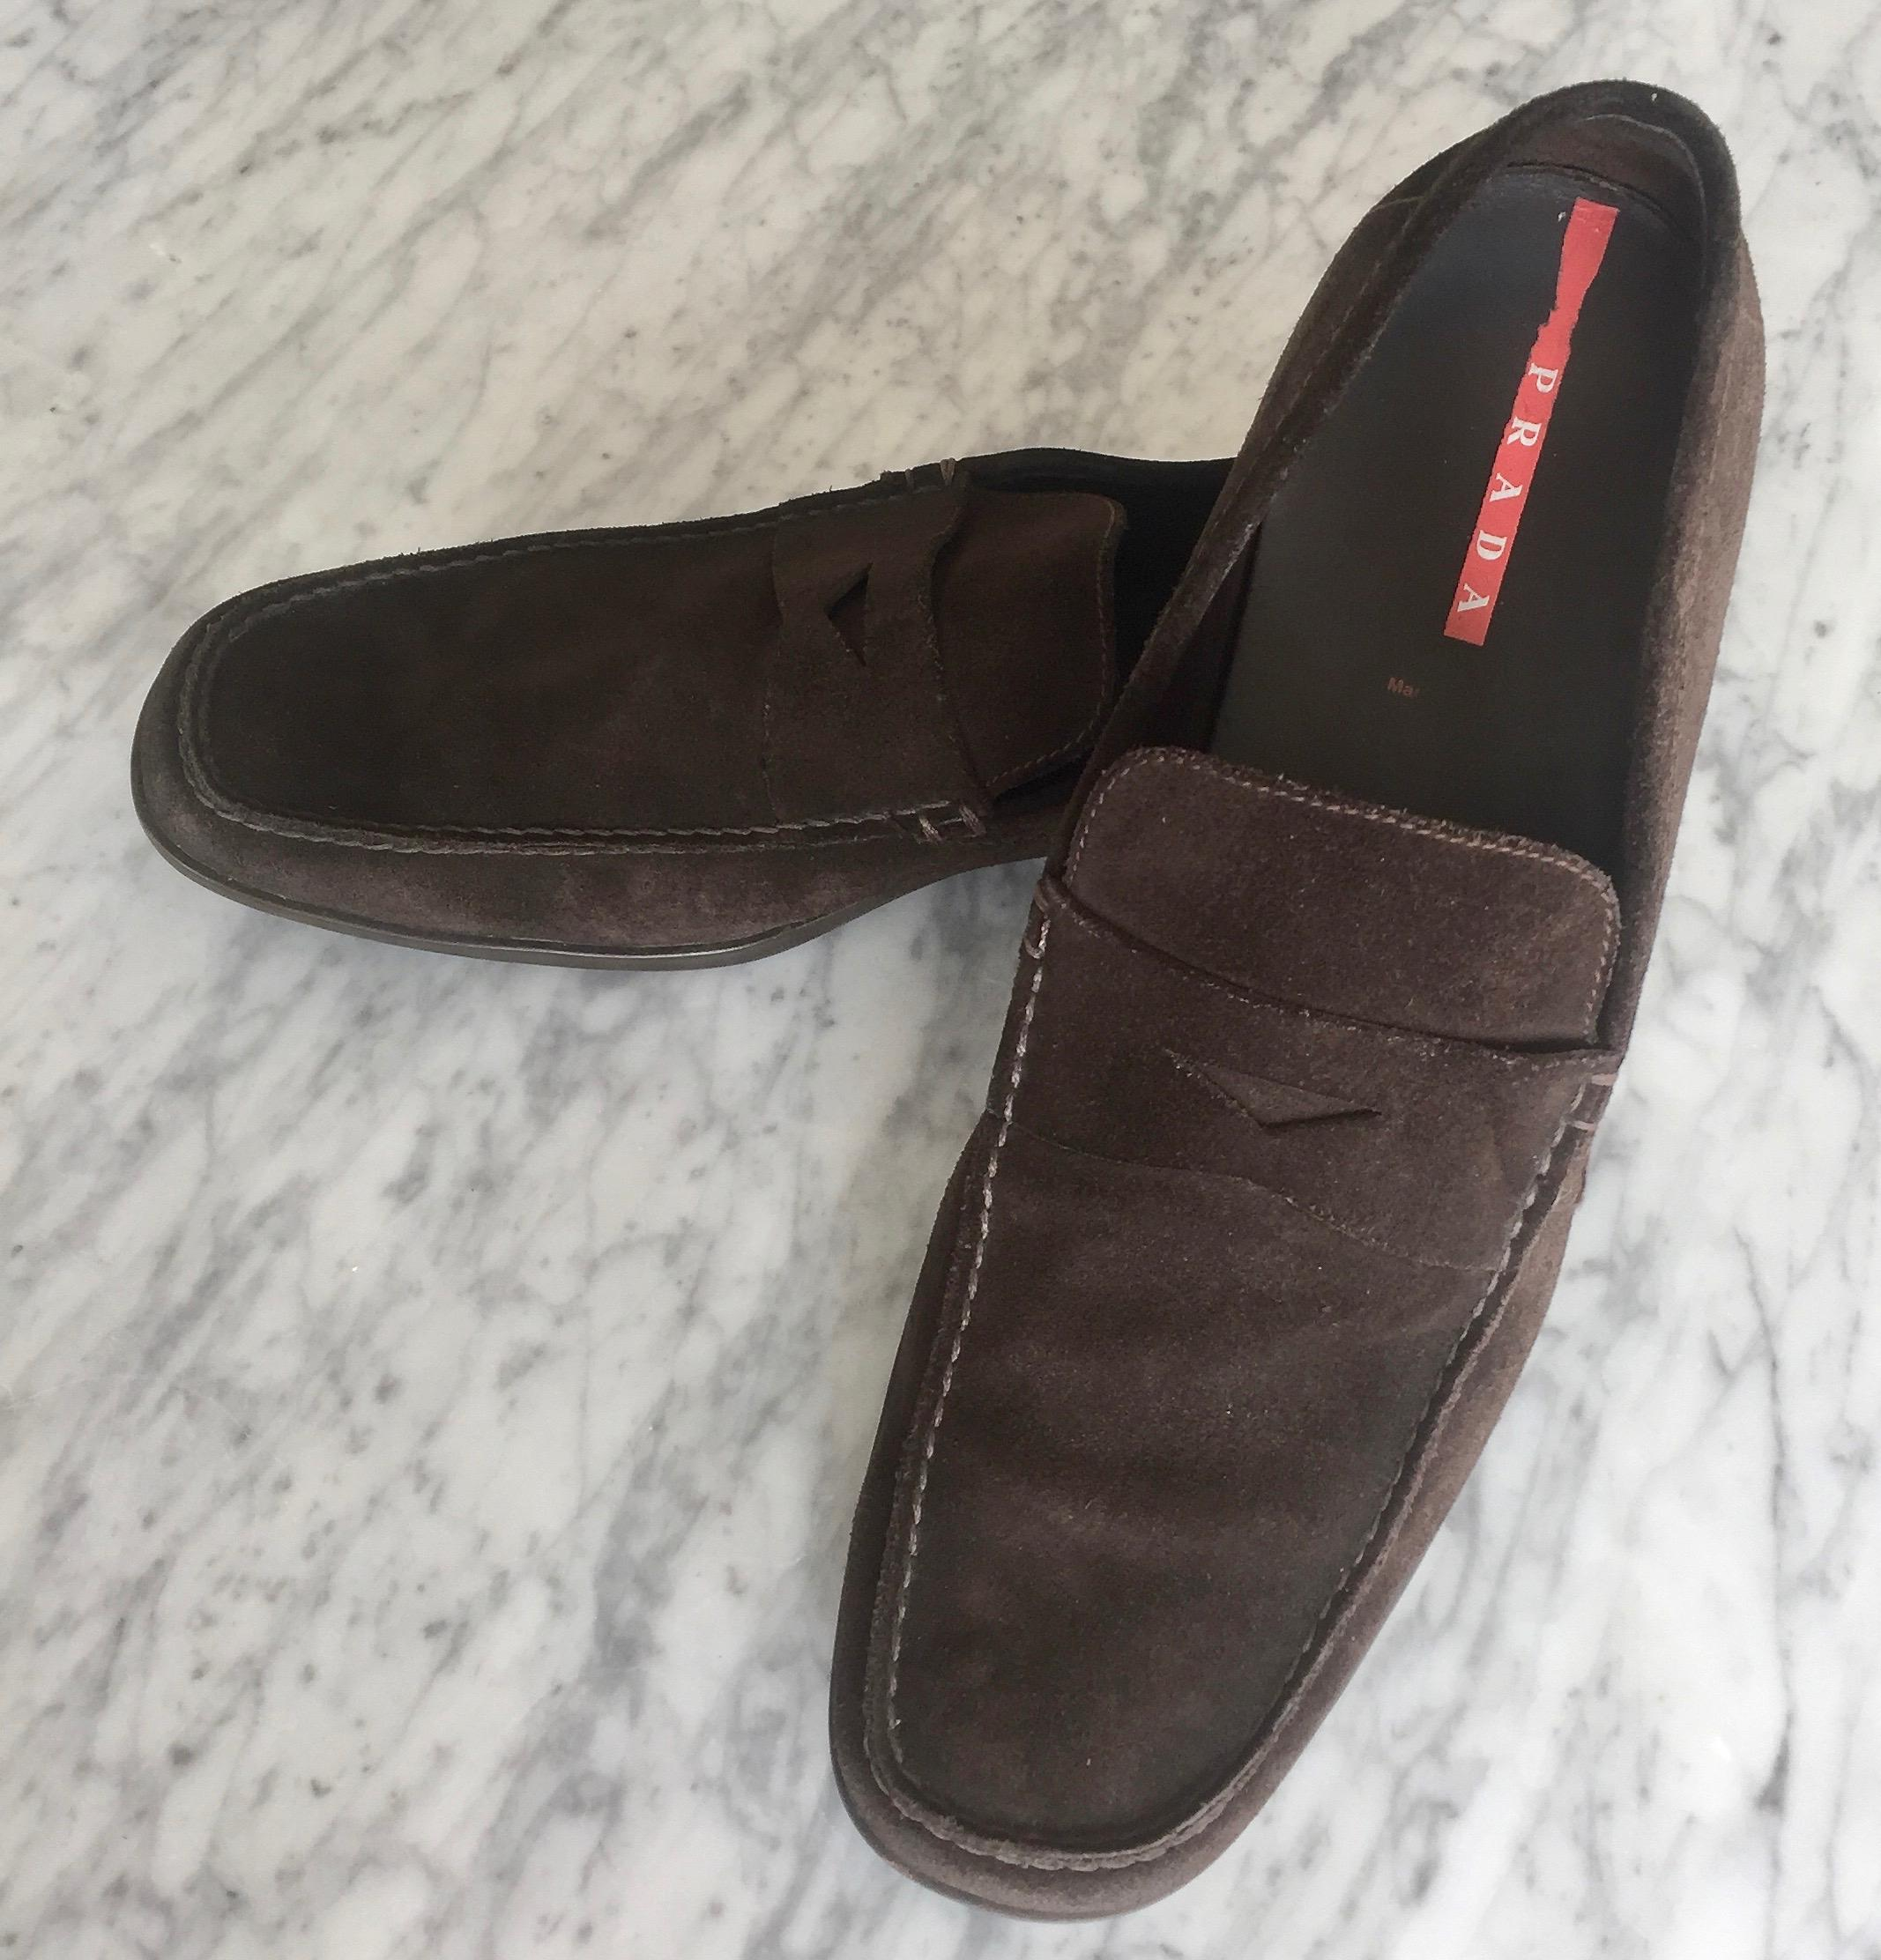 a9694cbc337f ... switzerland prada brown suede loafers flats size us 12 regular m b  tradesy 2ef18 e9776